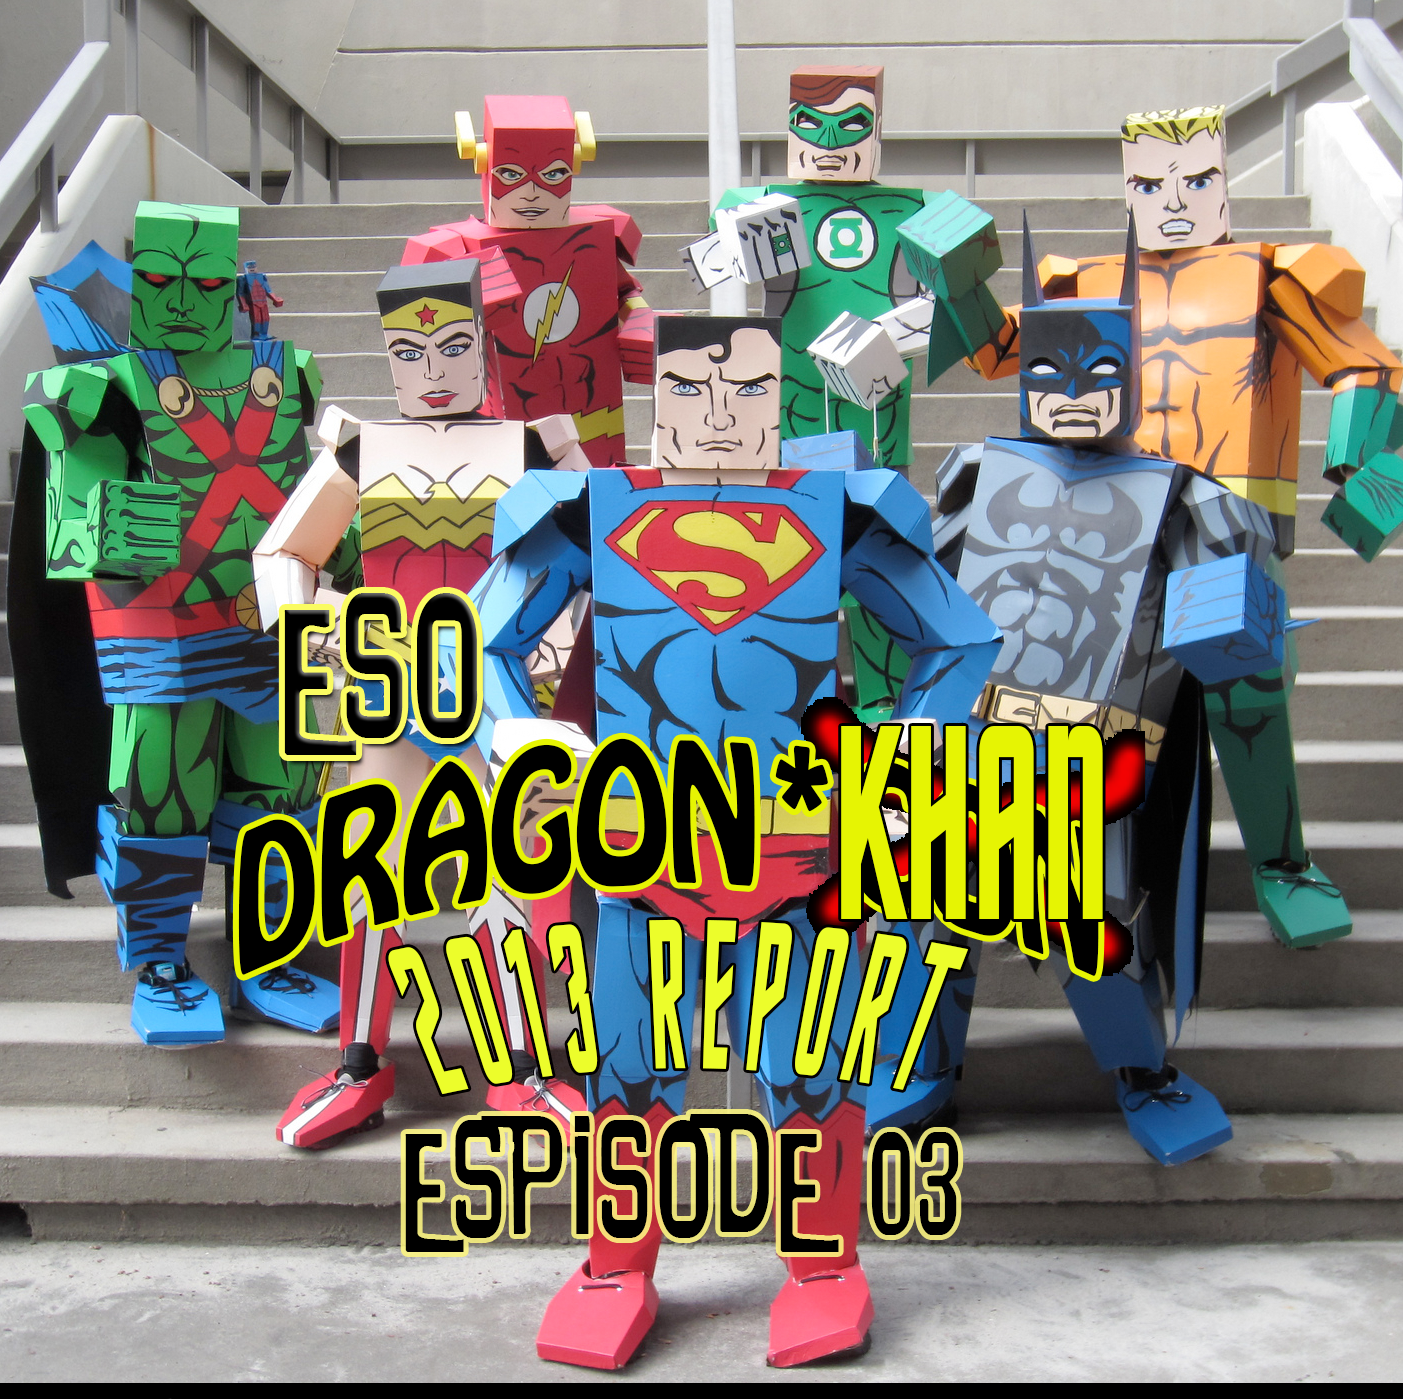 ESO Dragon*Con Khan Report 2013 ep 3